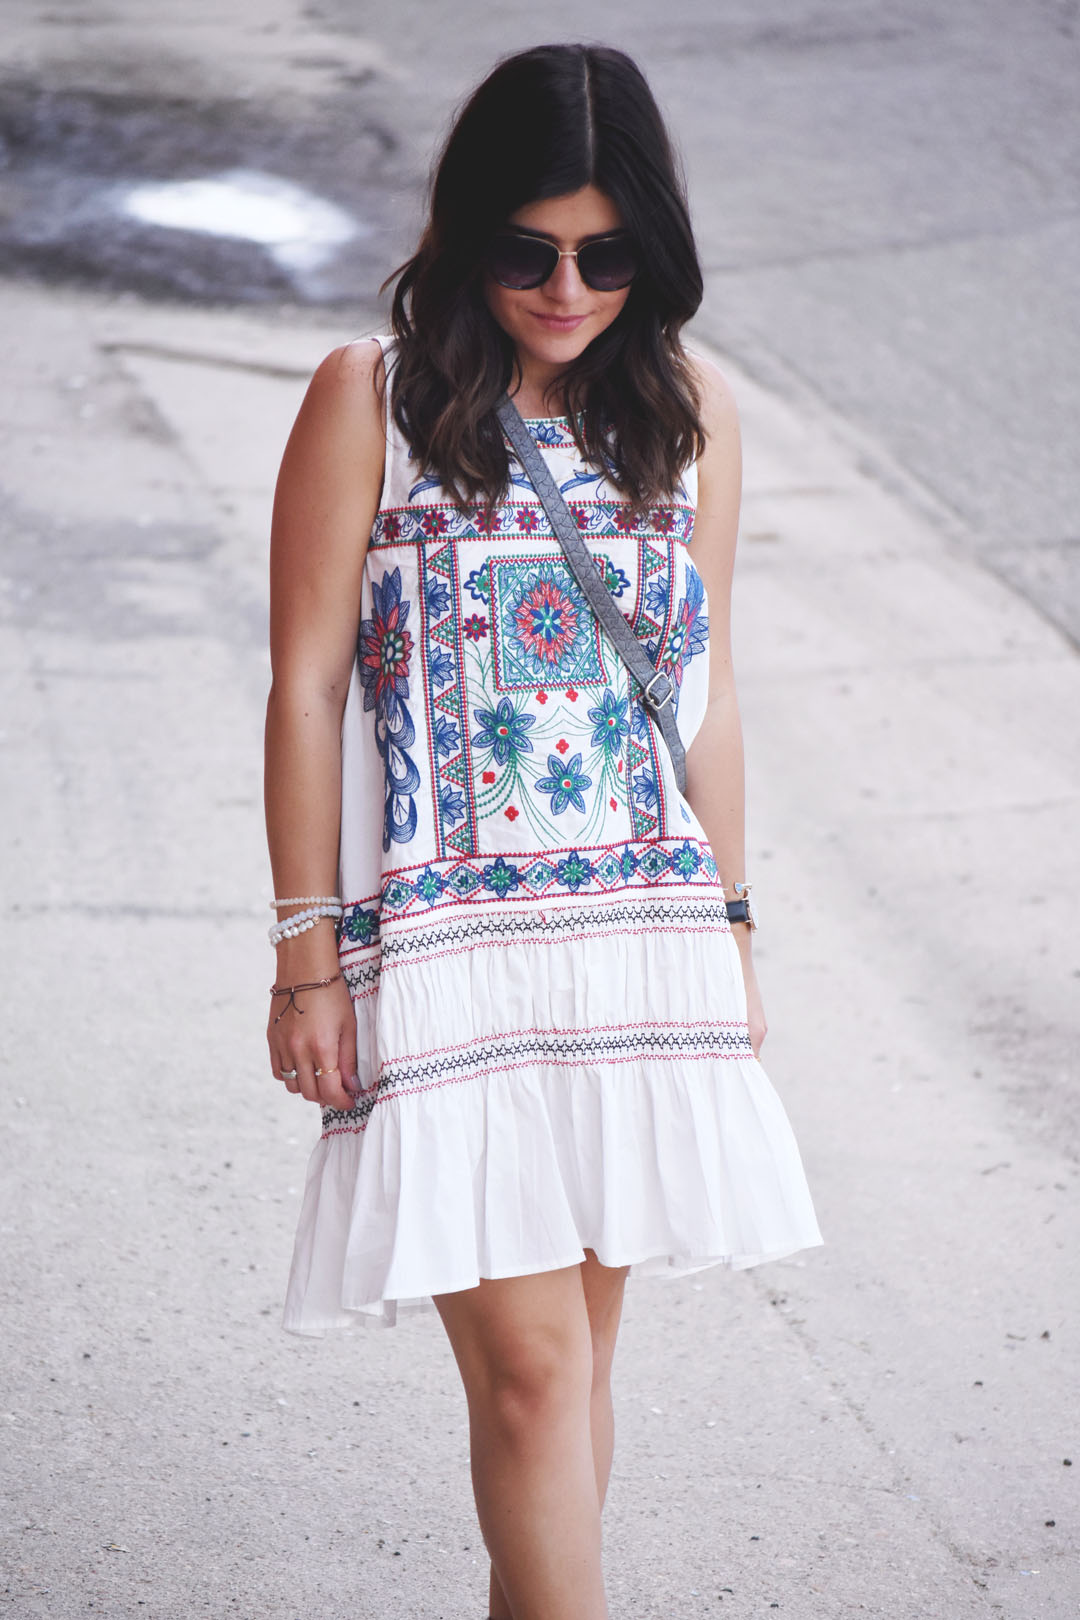 Carolina Hellal of the fashion blog Chic Talk wearing a Chicwish white embroidered dress and Nordstrom sunglasses